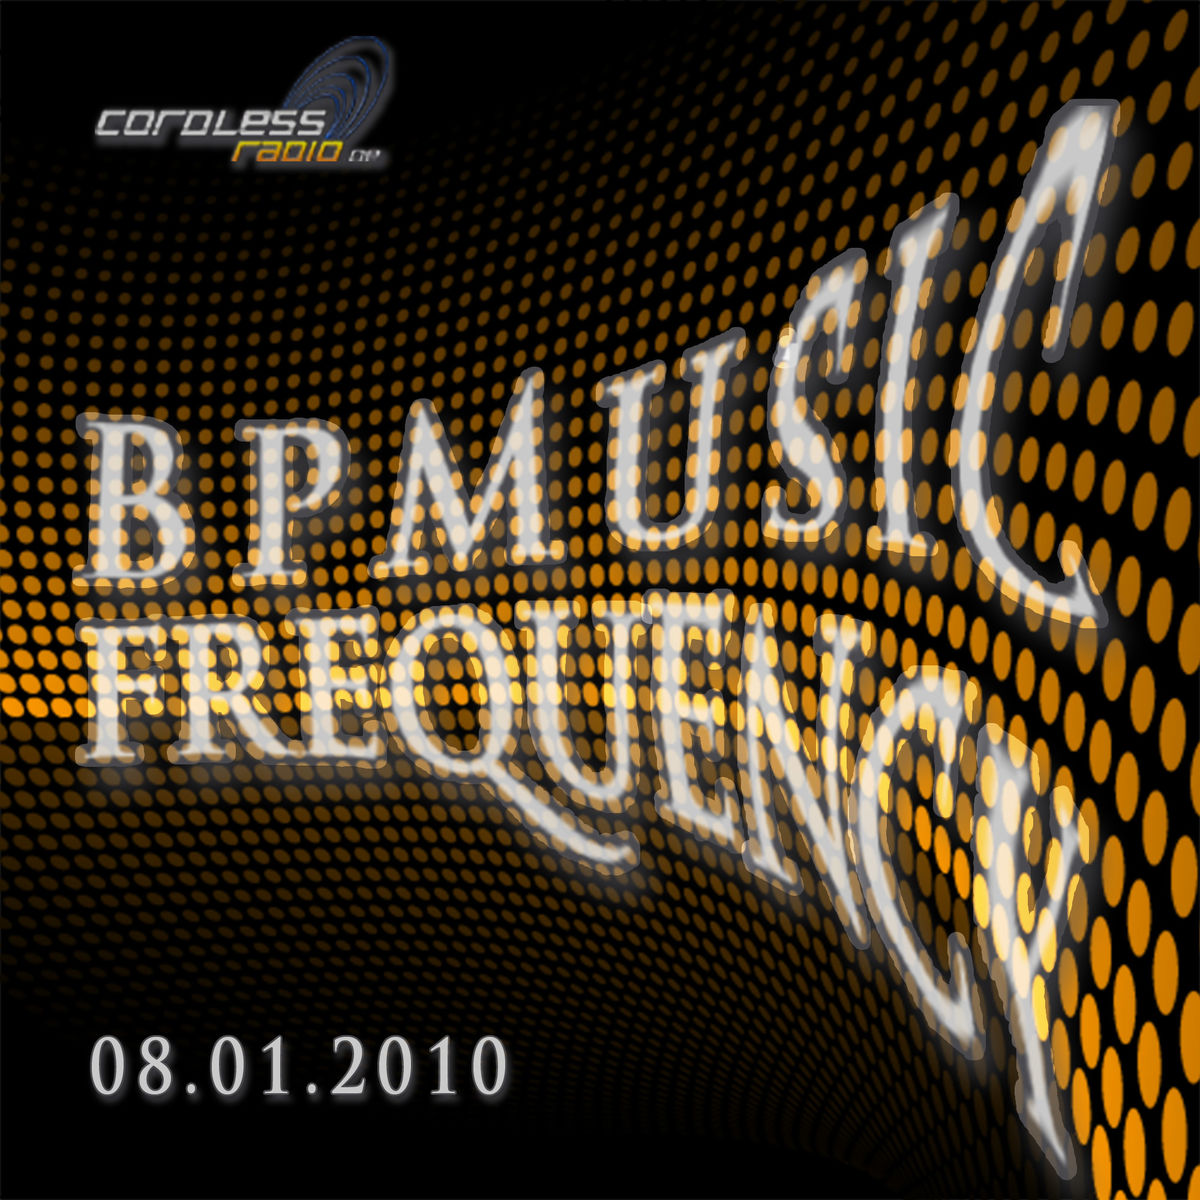 [08.01.2010] BPMusic Frequency @ cordless-radio.de